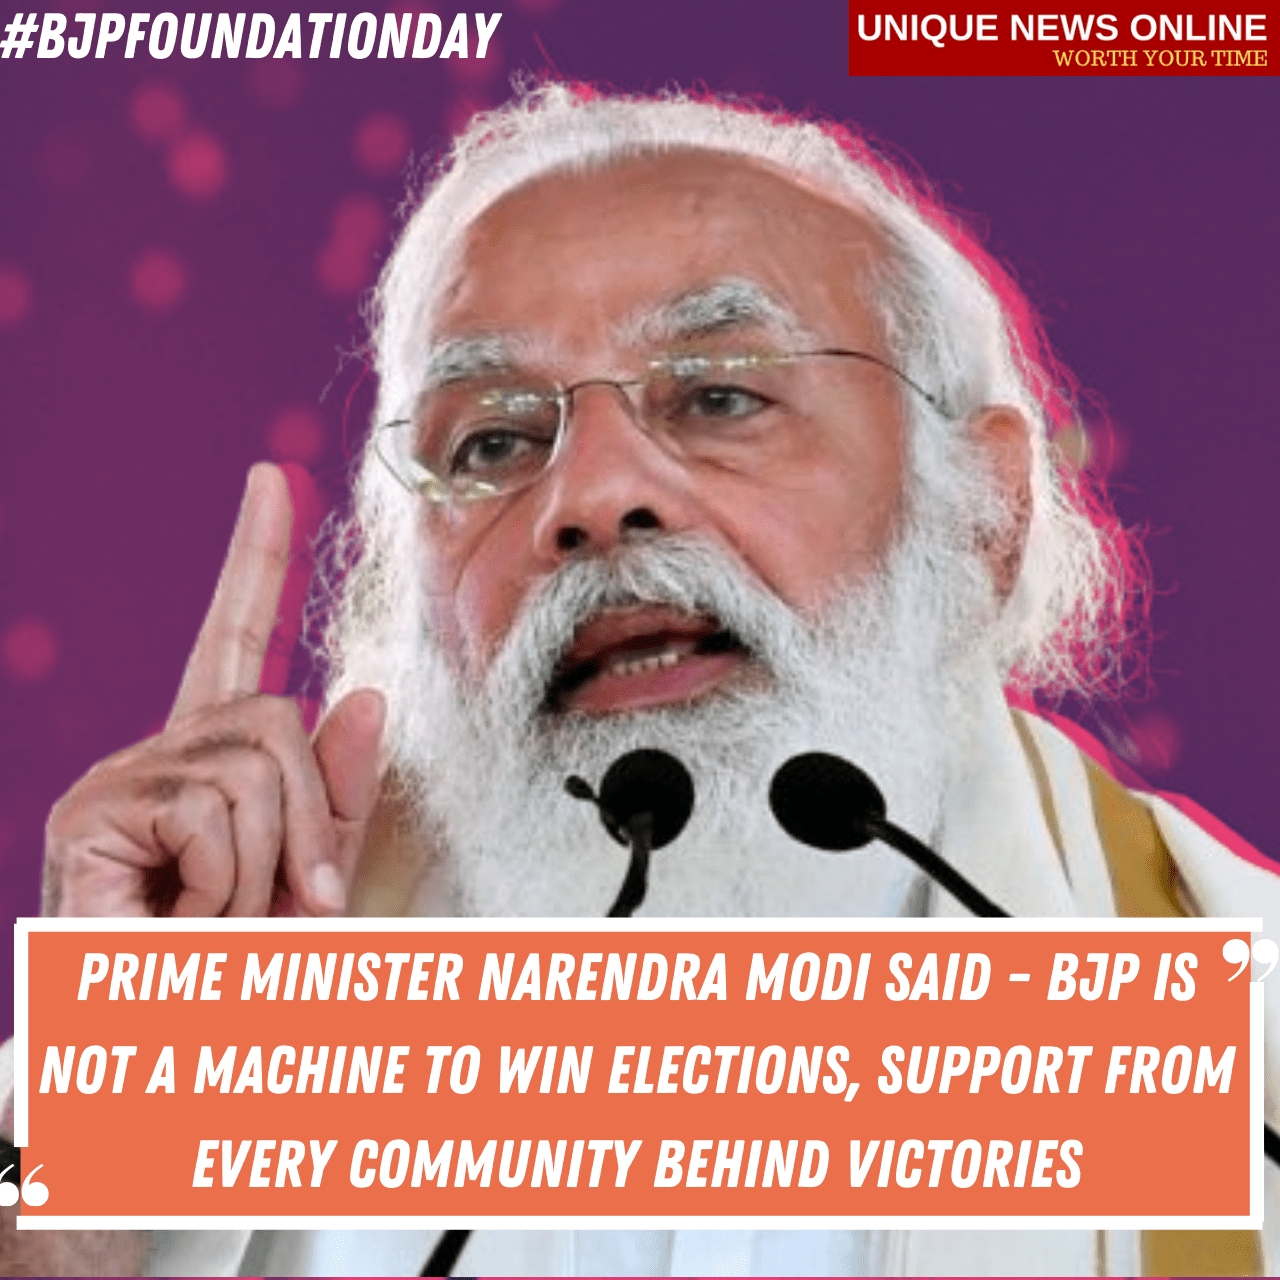 41st BJP Foundation Day: Prime Minister Narendra Modi said - BJP is not a machine to win elections, support from every community behind victories